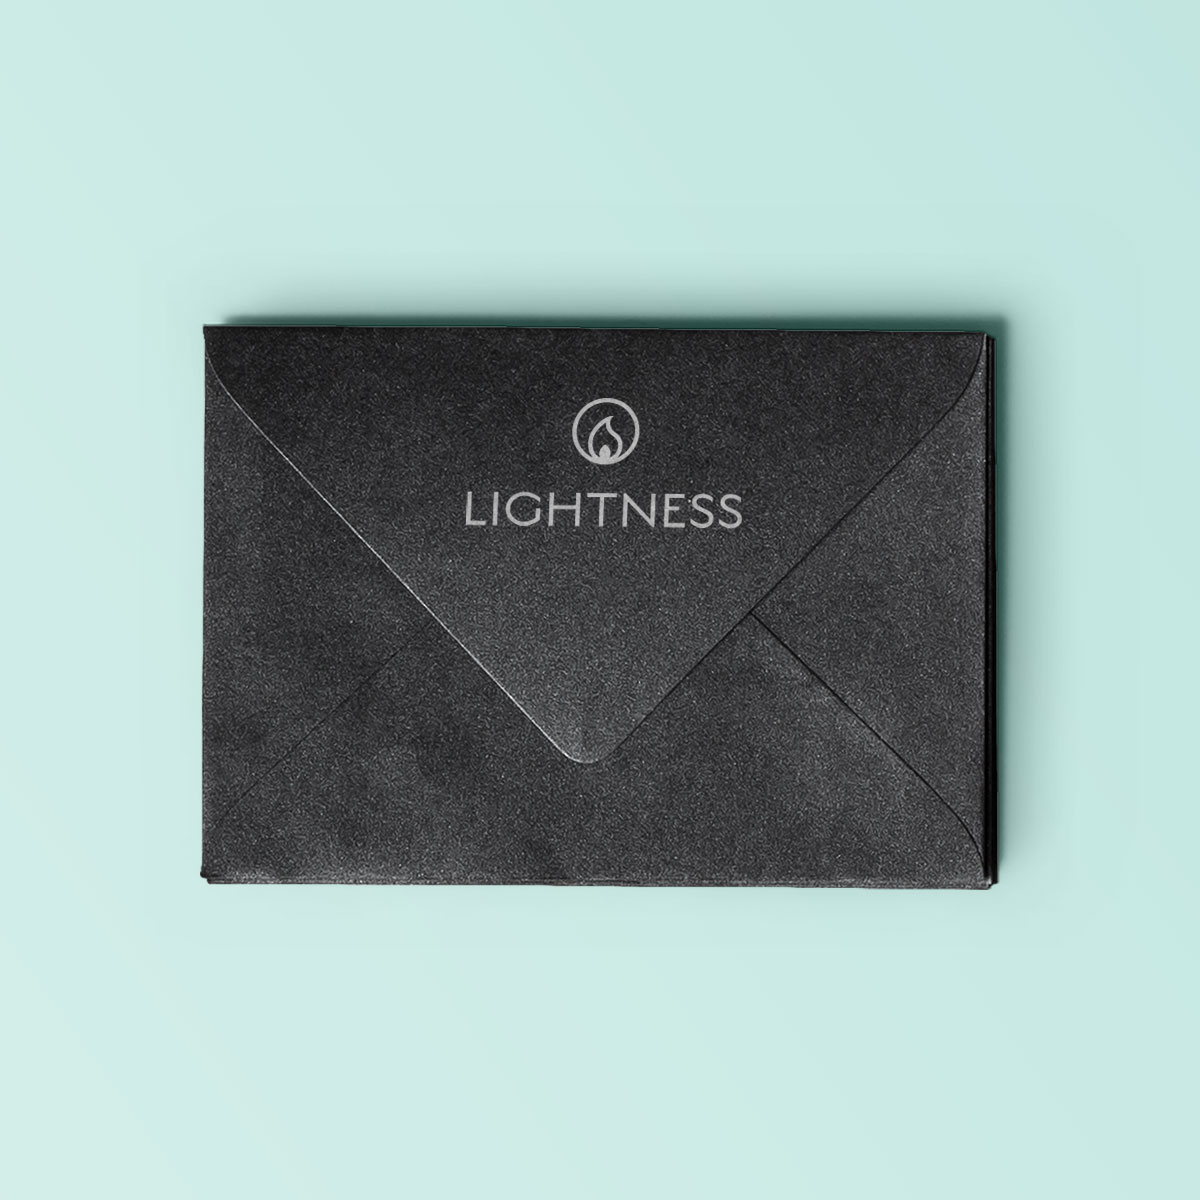 Lightness Brand Design